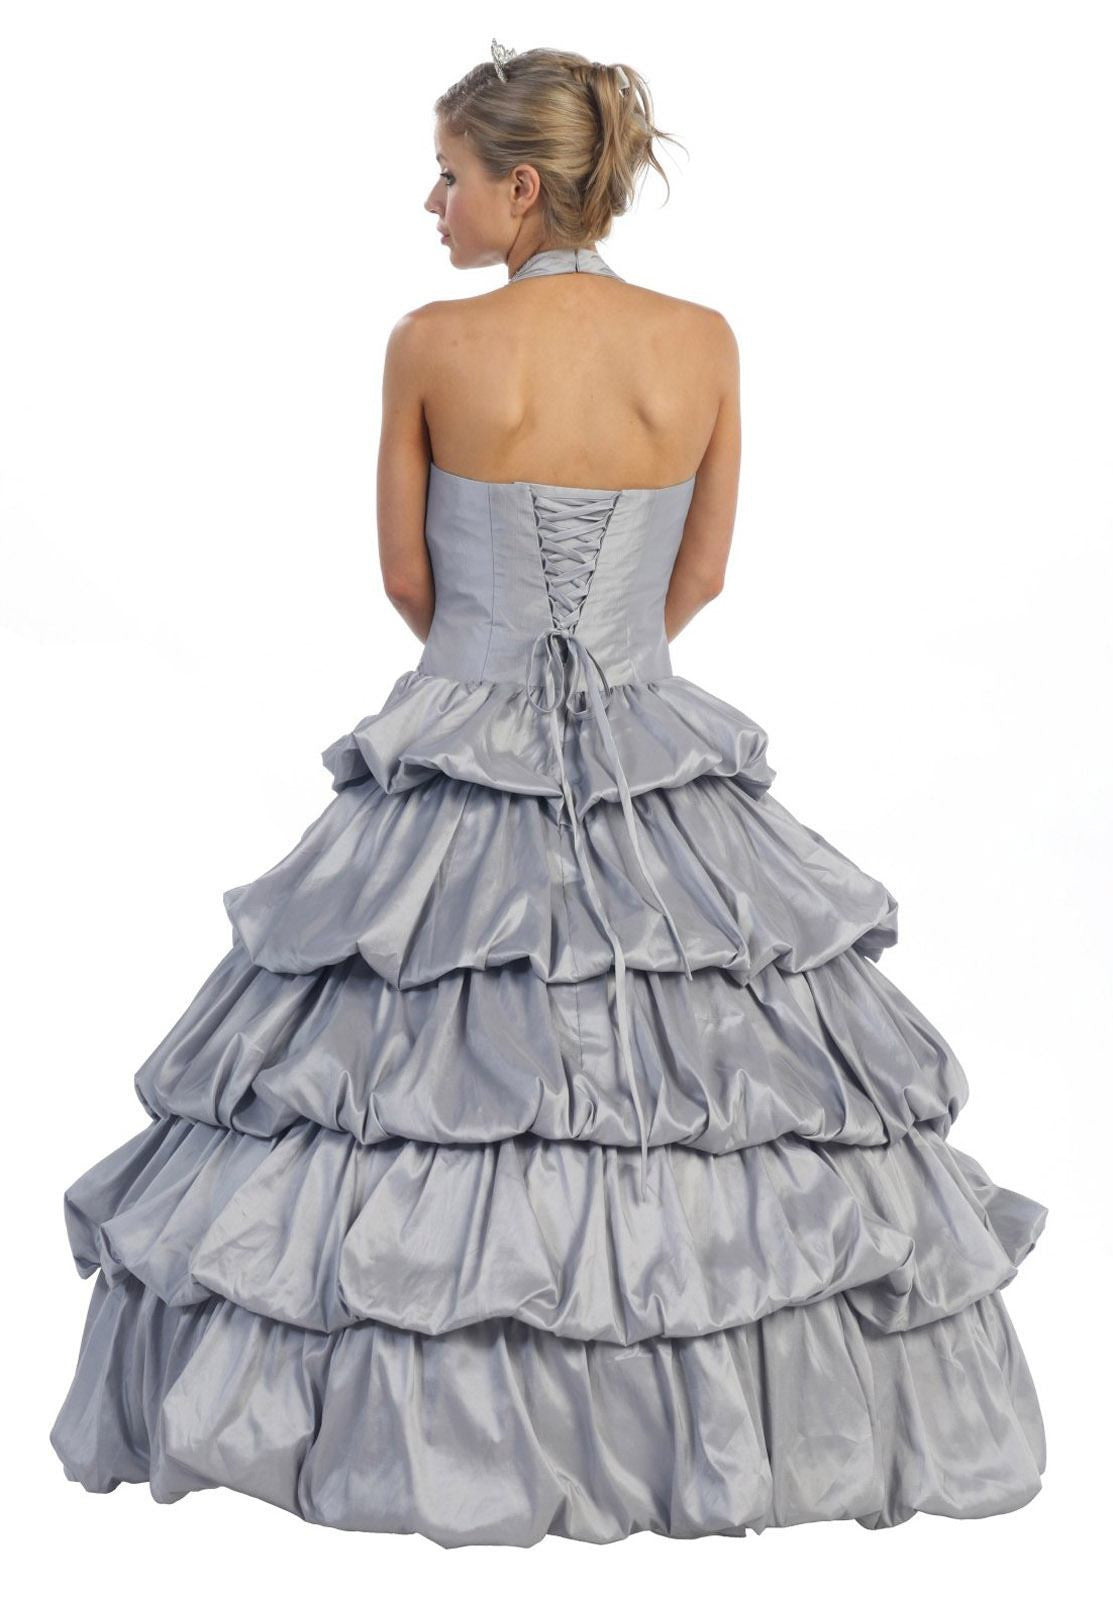 Long Poofy Silver Cinderella Dress Strapless Quinceanera Puffy Gown ...